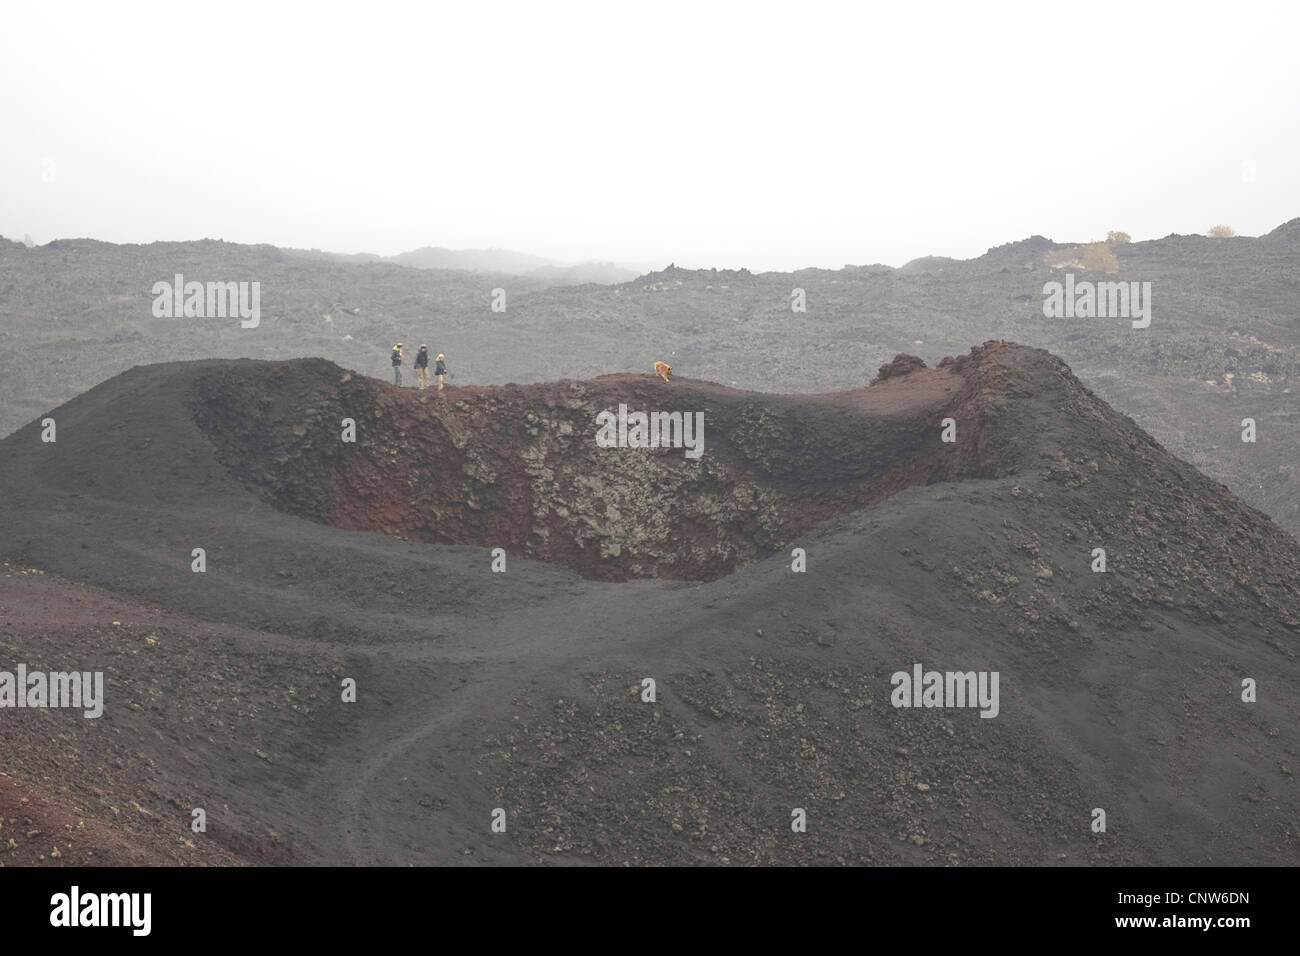 family wandering at a volcanic crater of Mount Etna, Italy, Sicilia - Stock Image